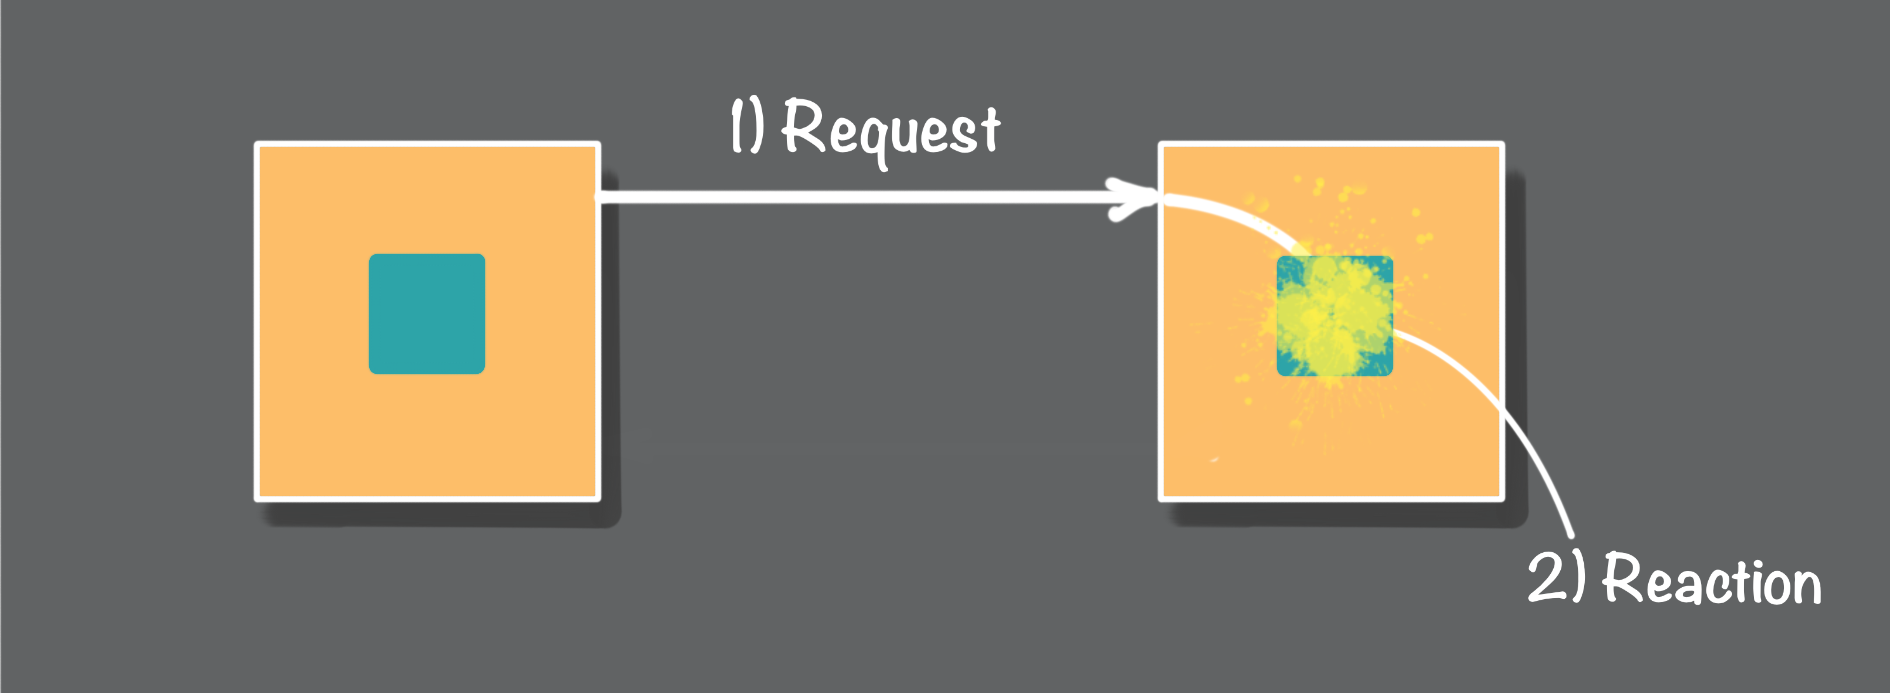 Figure 3: Failures during request message processing